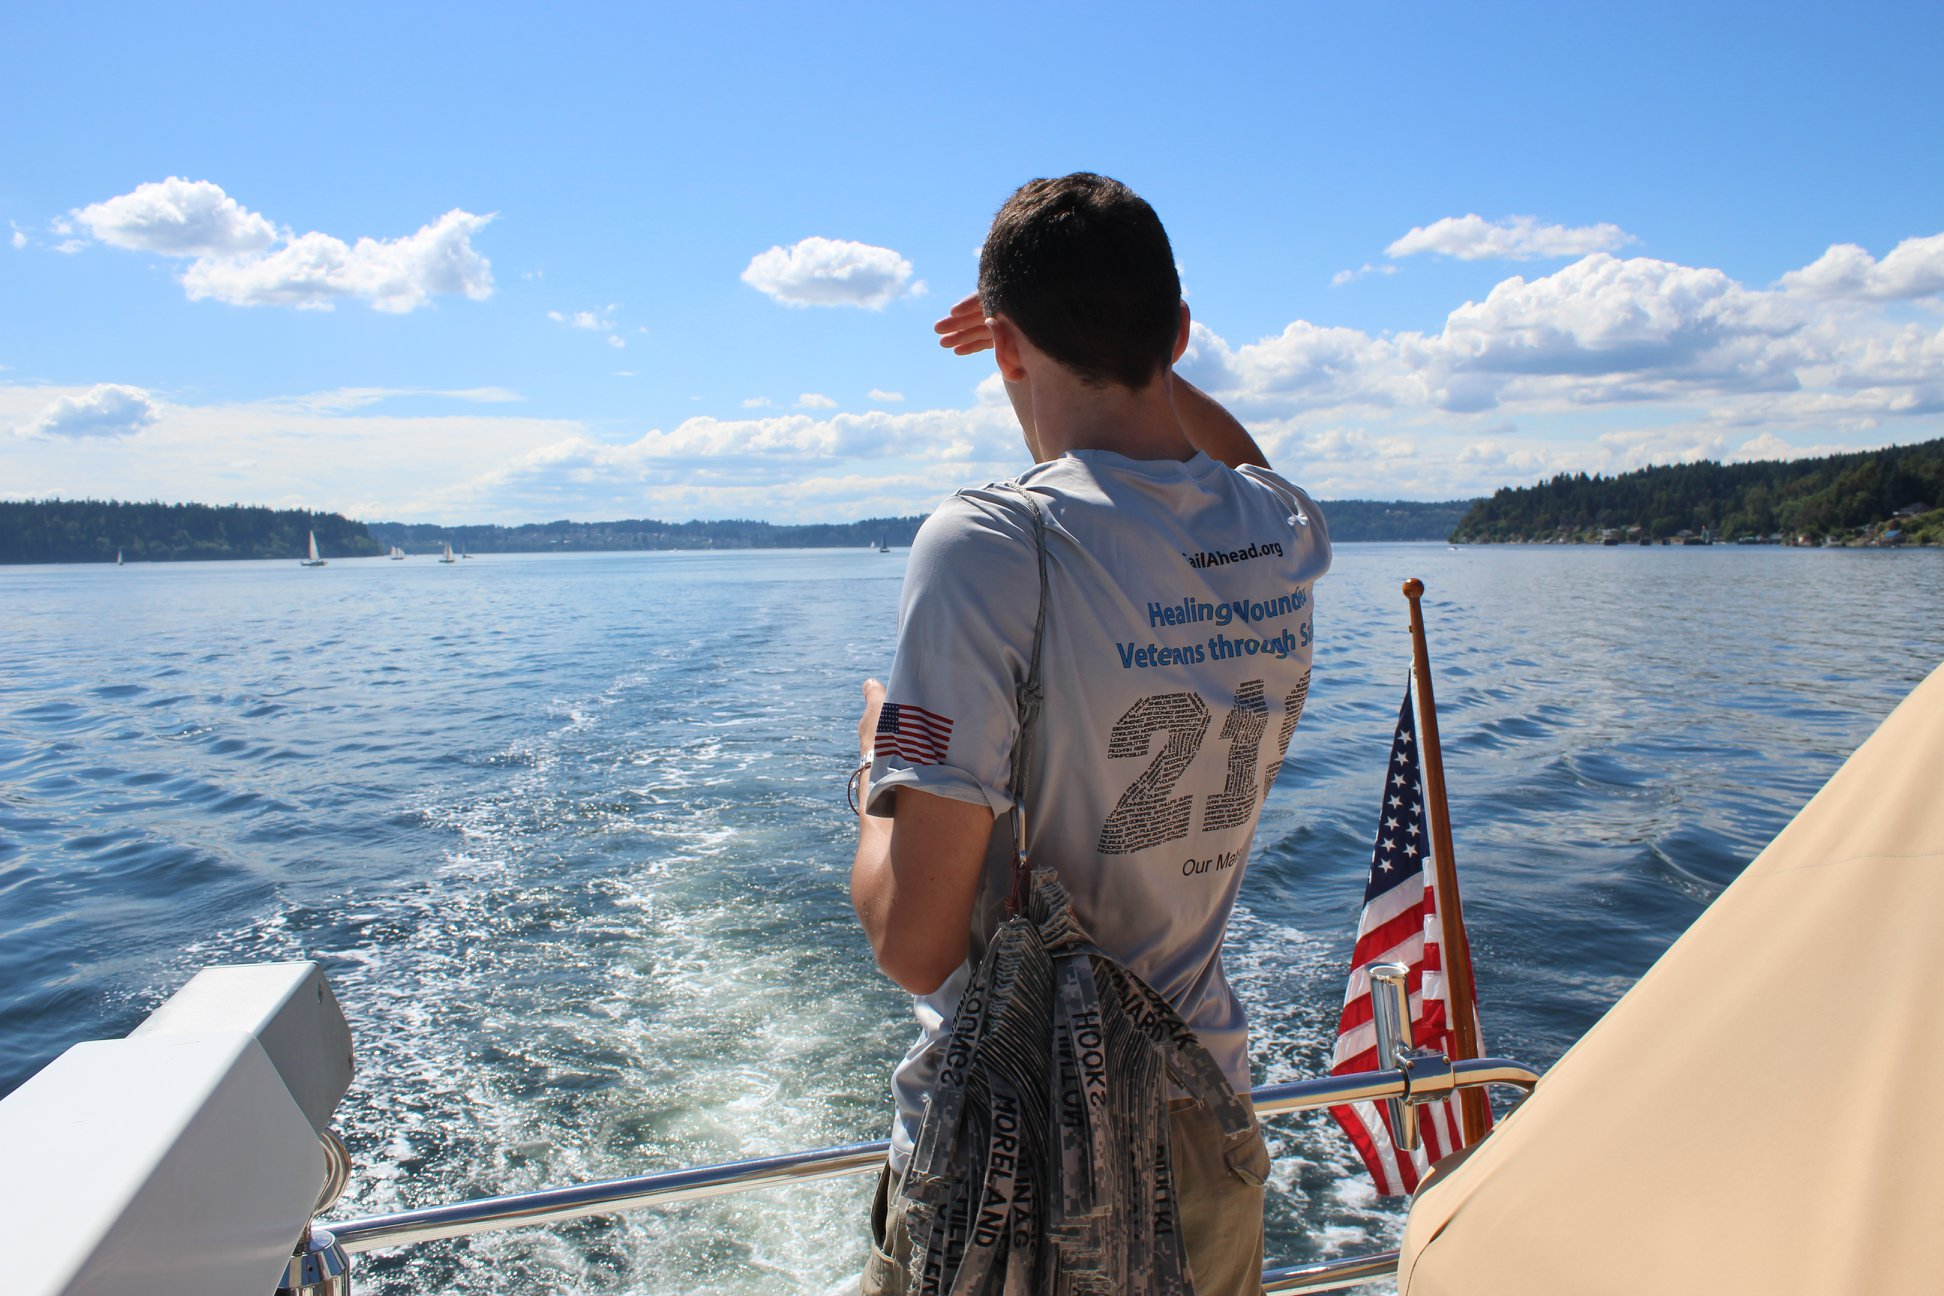 Mates sailing in the Puget Sound